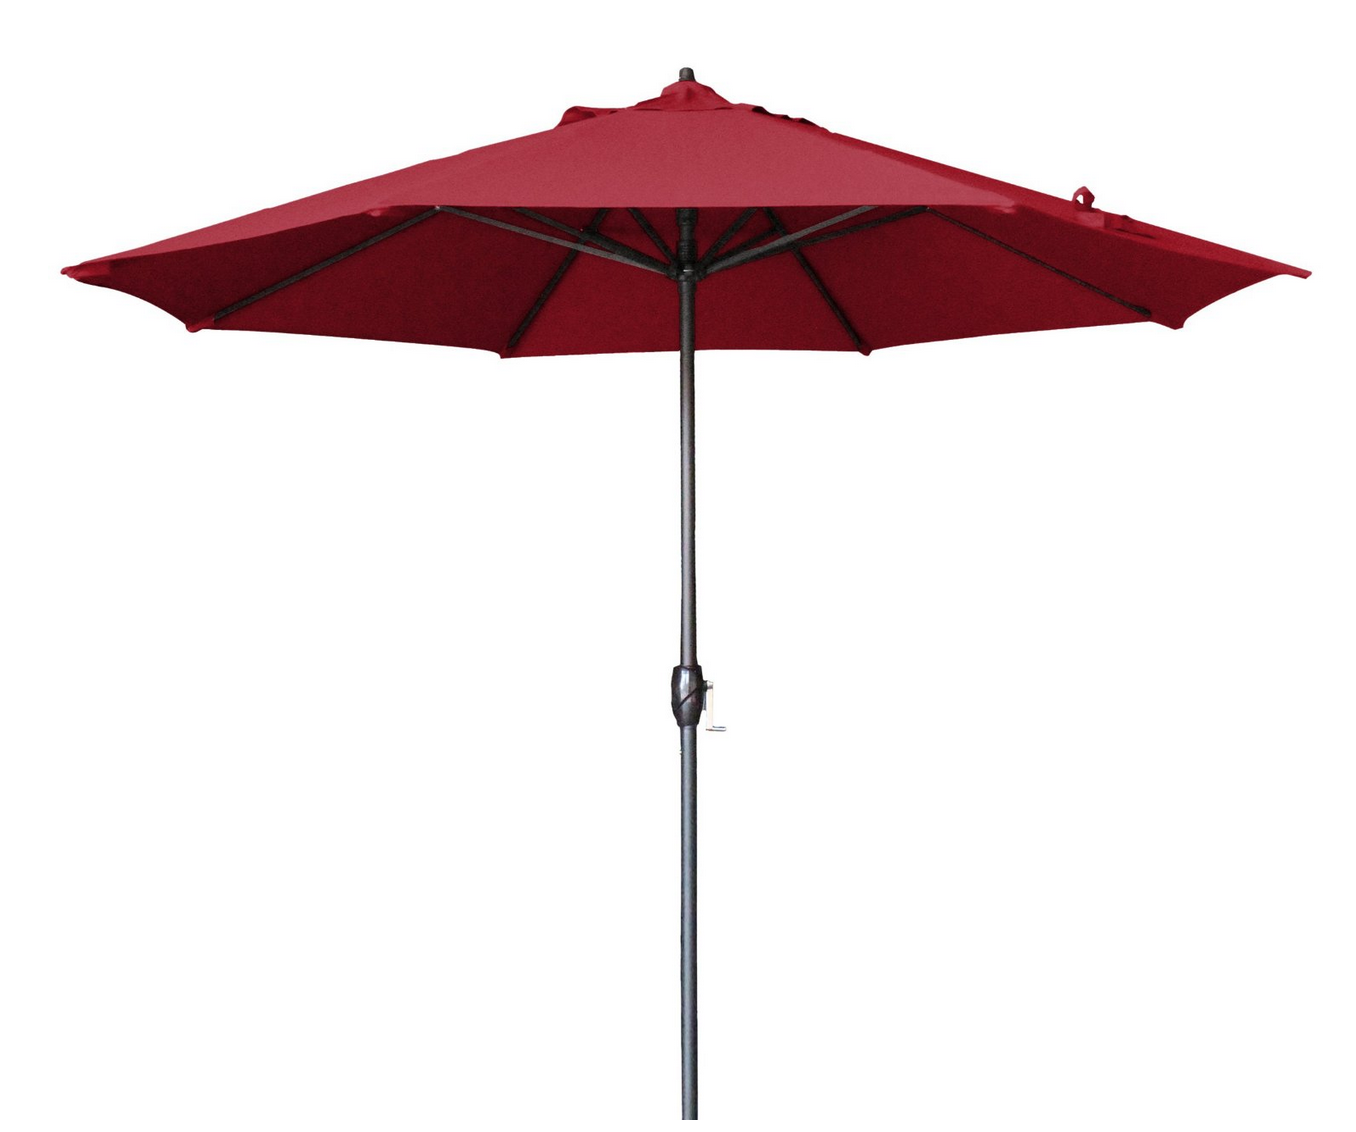 40% or More on Select California Umbrella Products! Prices Start $69 + FREE Shipping!